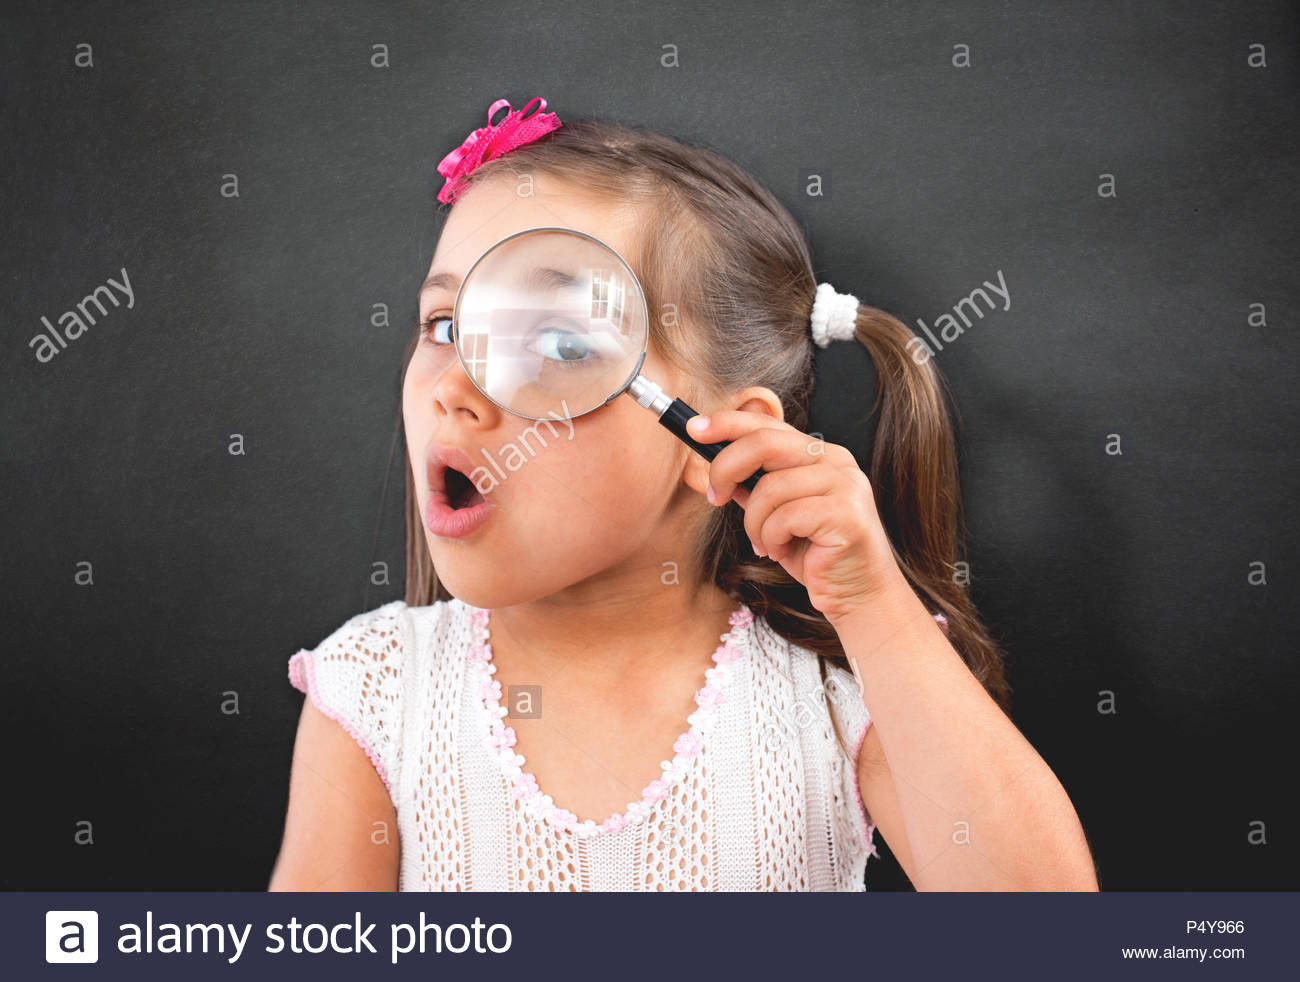 Portrait of Curious Little Child Girl Looking Through Magnifying Glass - Stock Image